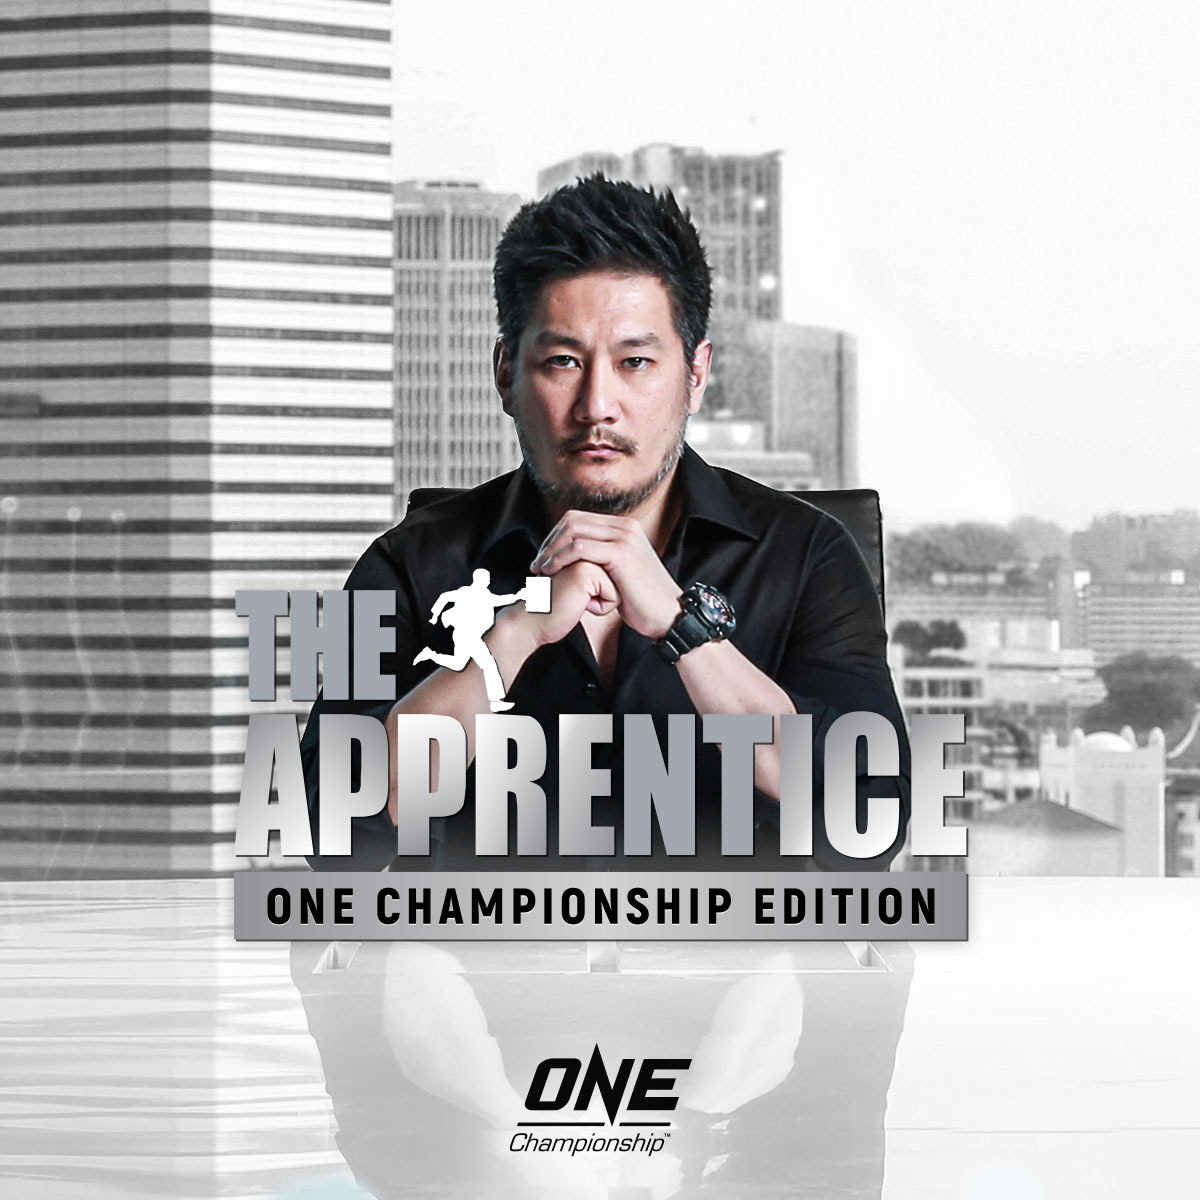 ONE Championship unveils 'The Apprentice: ONE Championship Edition'